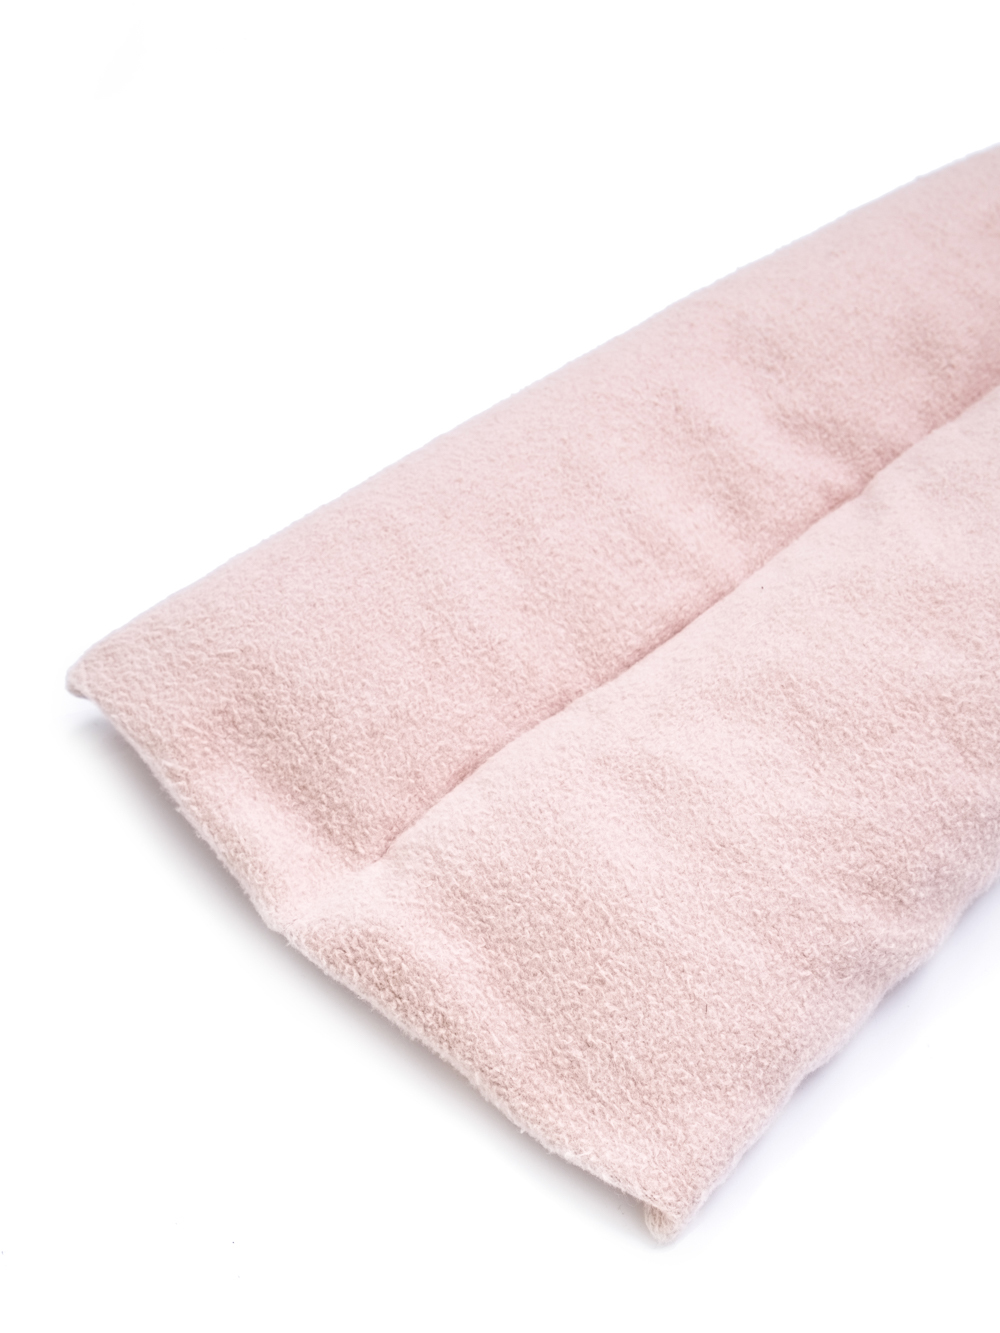 RICK OWENS OFF-THE-RUNWAY STOLE IN PETAL PINK